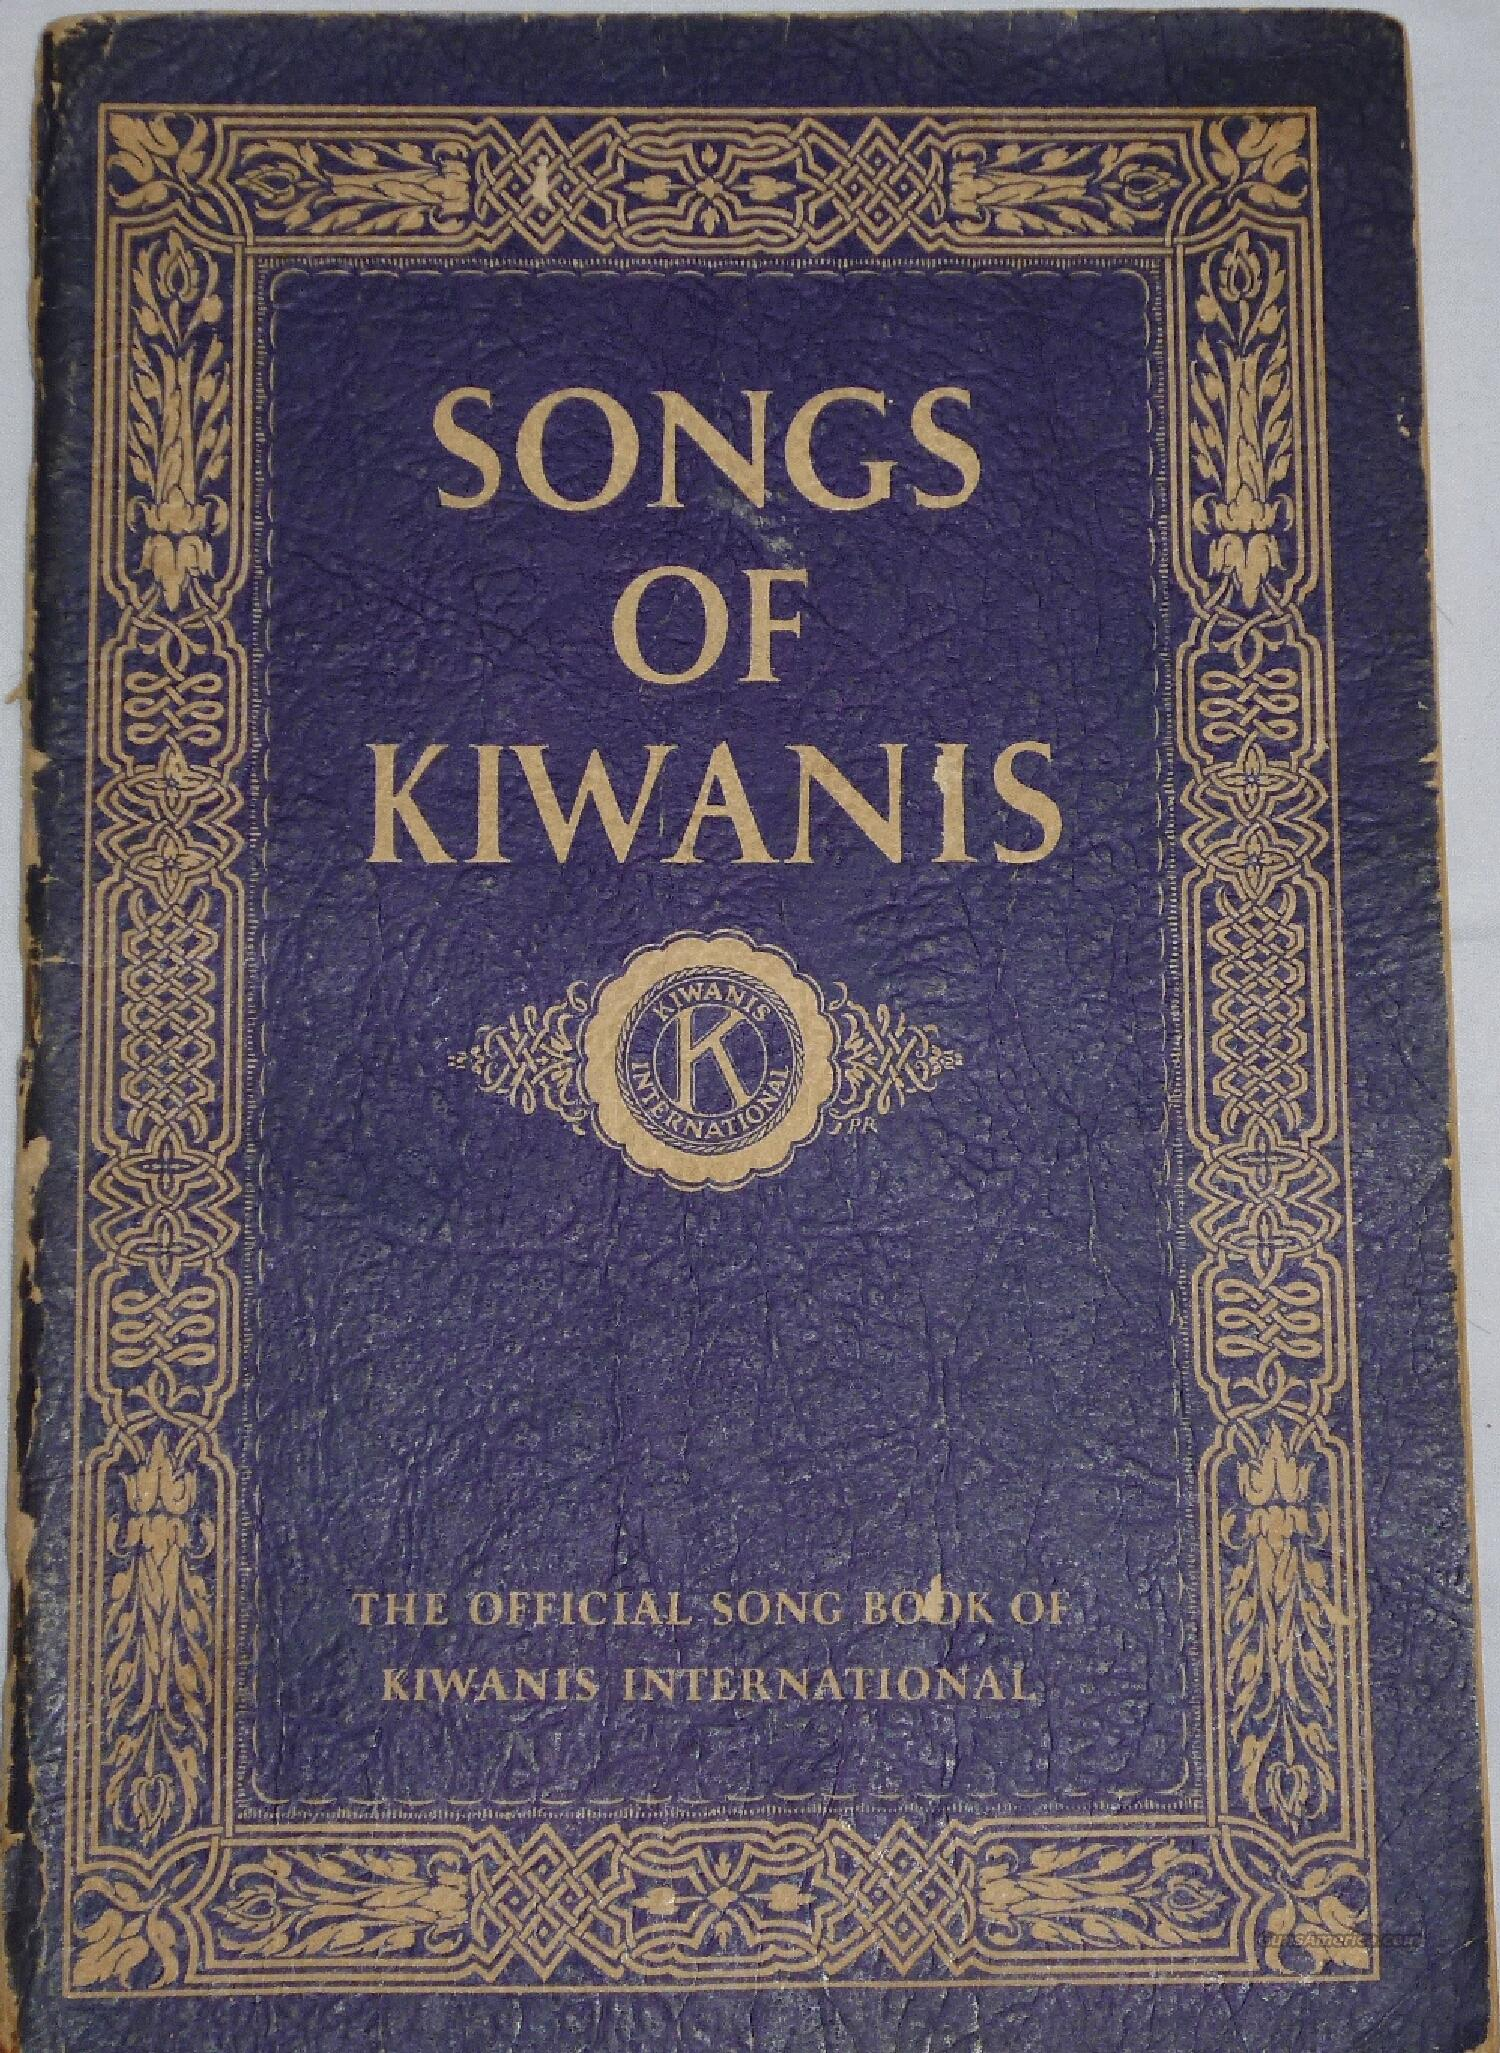 SONGS OF KIWANIS - 1920's SONG BOOK - FREE SHIPPING!!